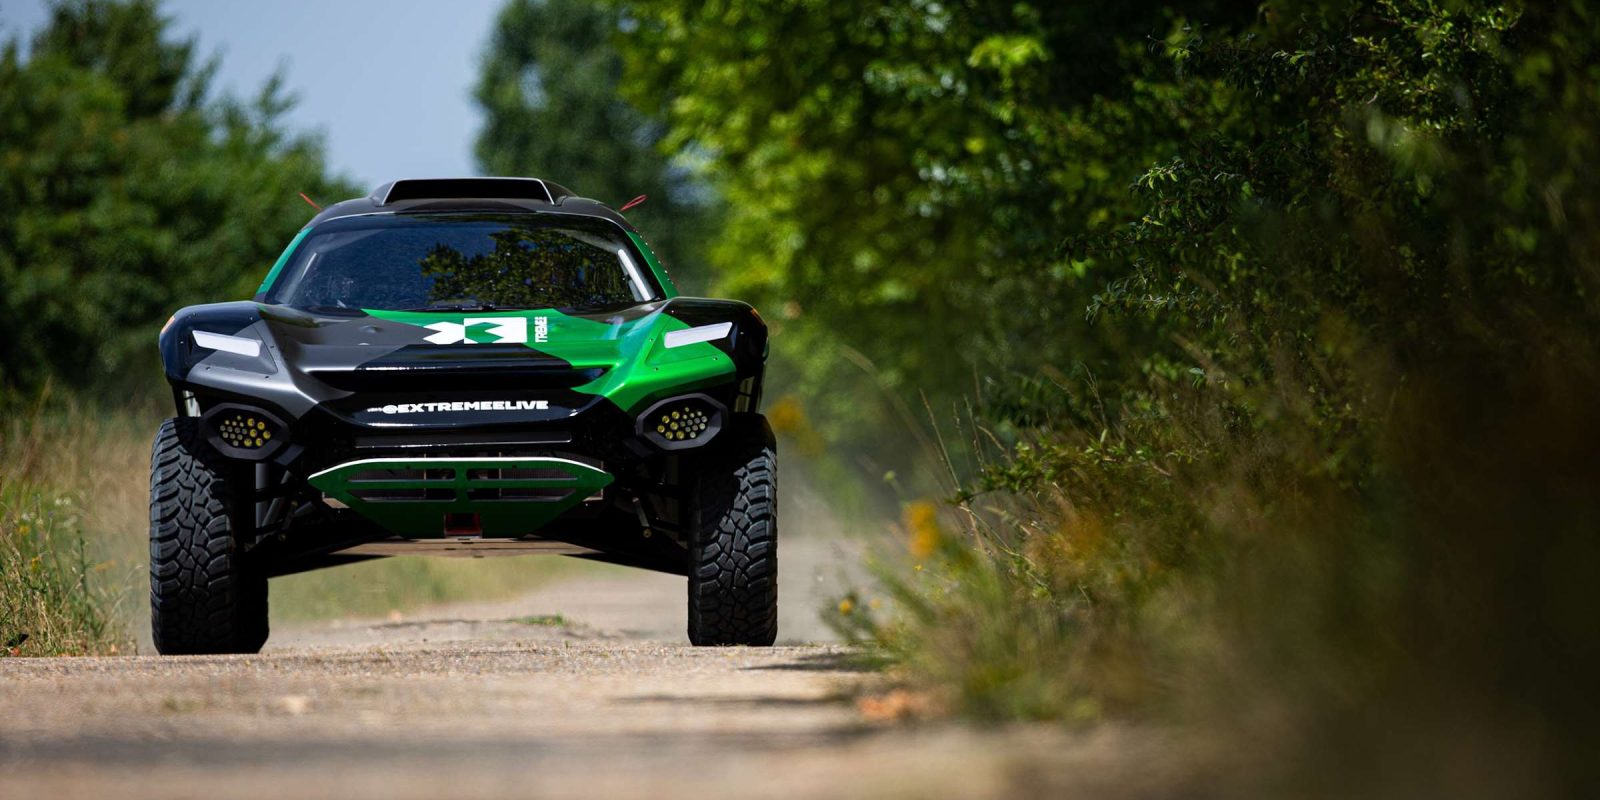 Extreme E unveils Odyssey 21, an electric beast of an SUV built to race in extreme conditions